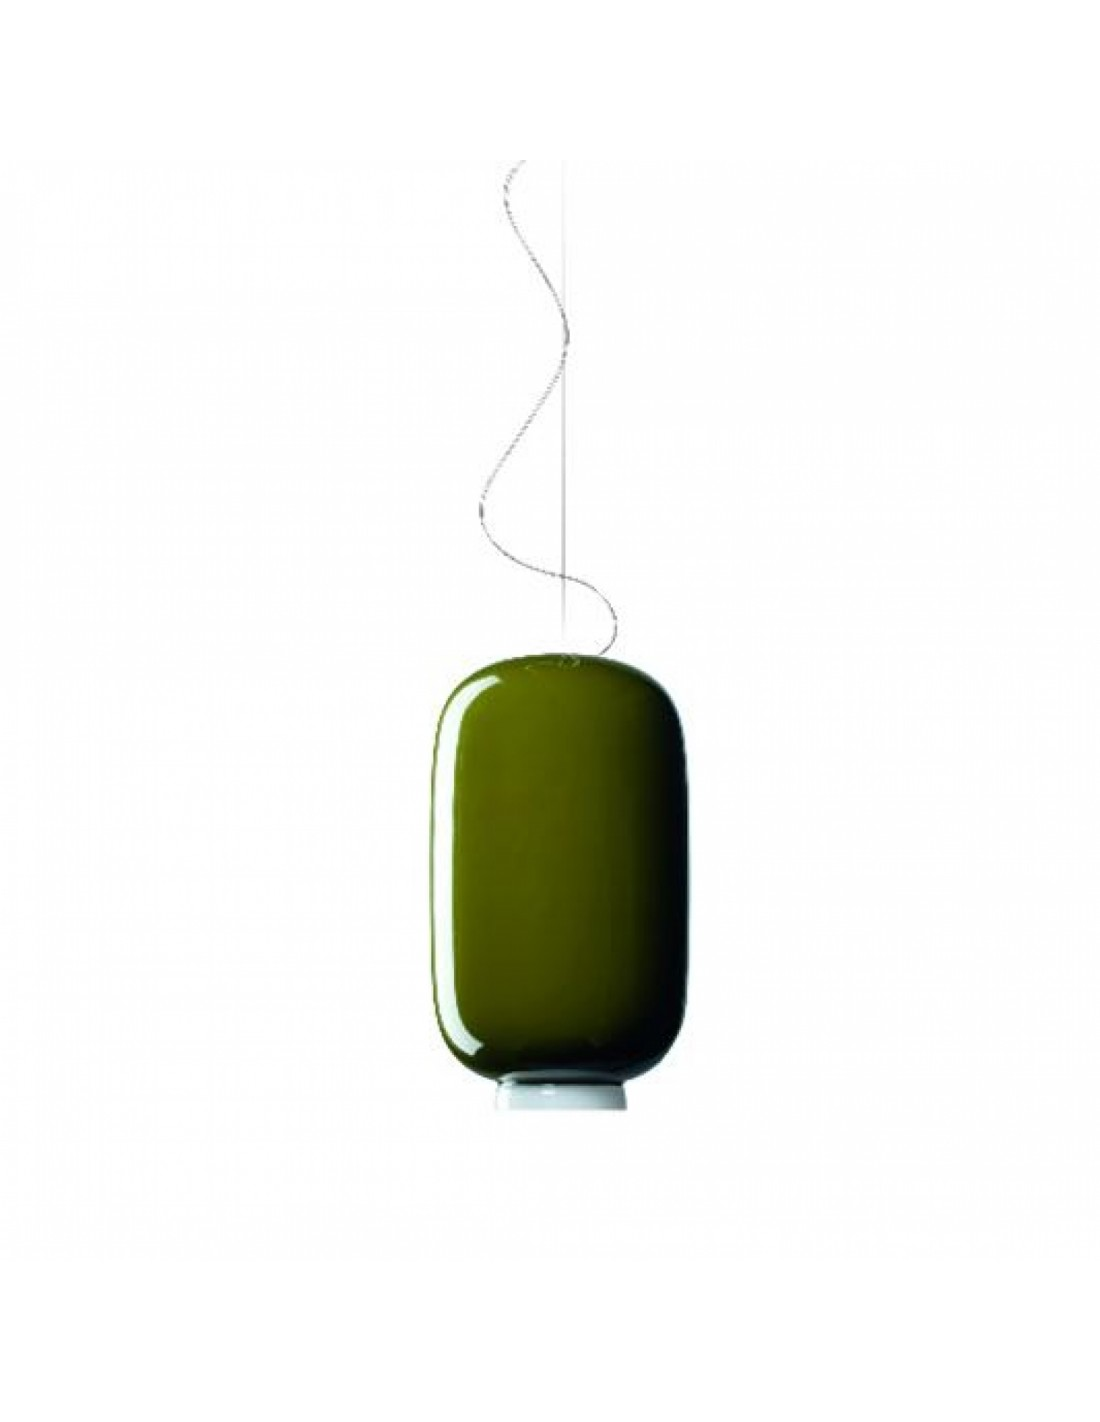 Suspension Chouchin Mini 2 verte foscarini